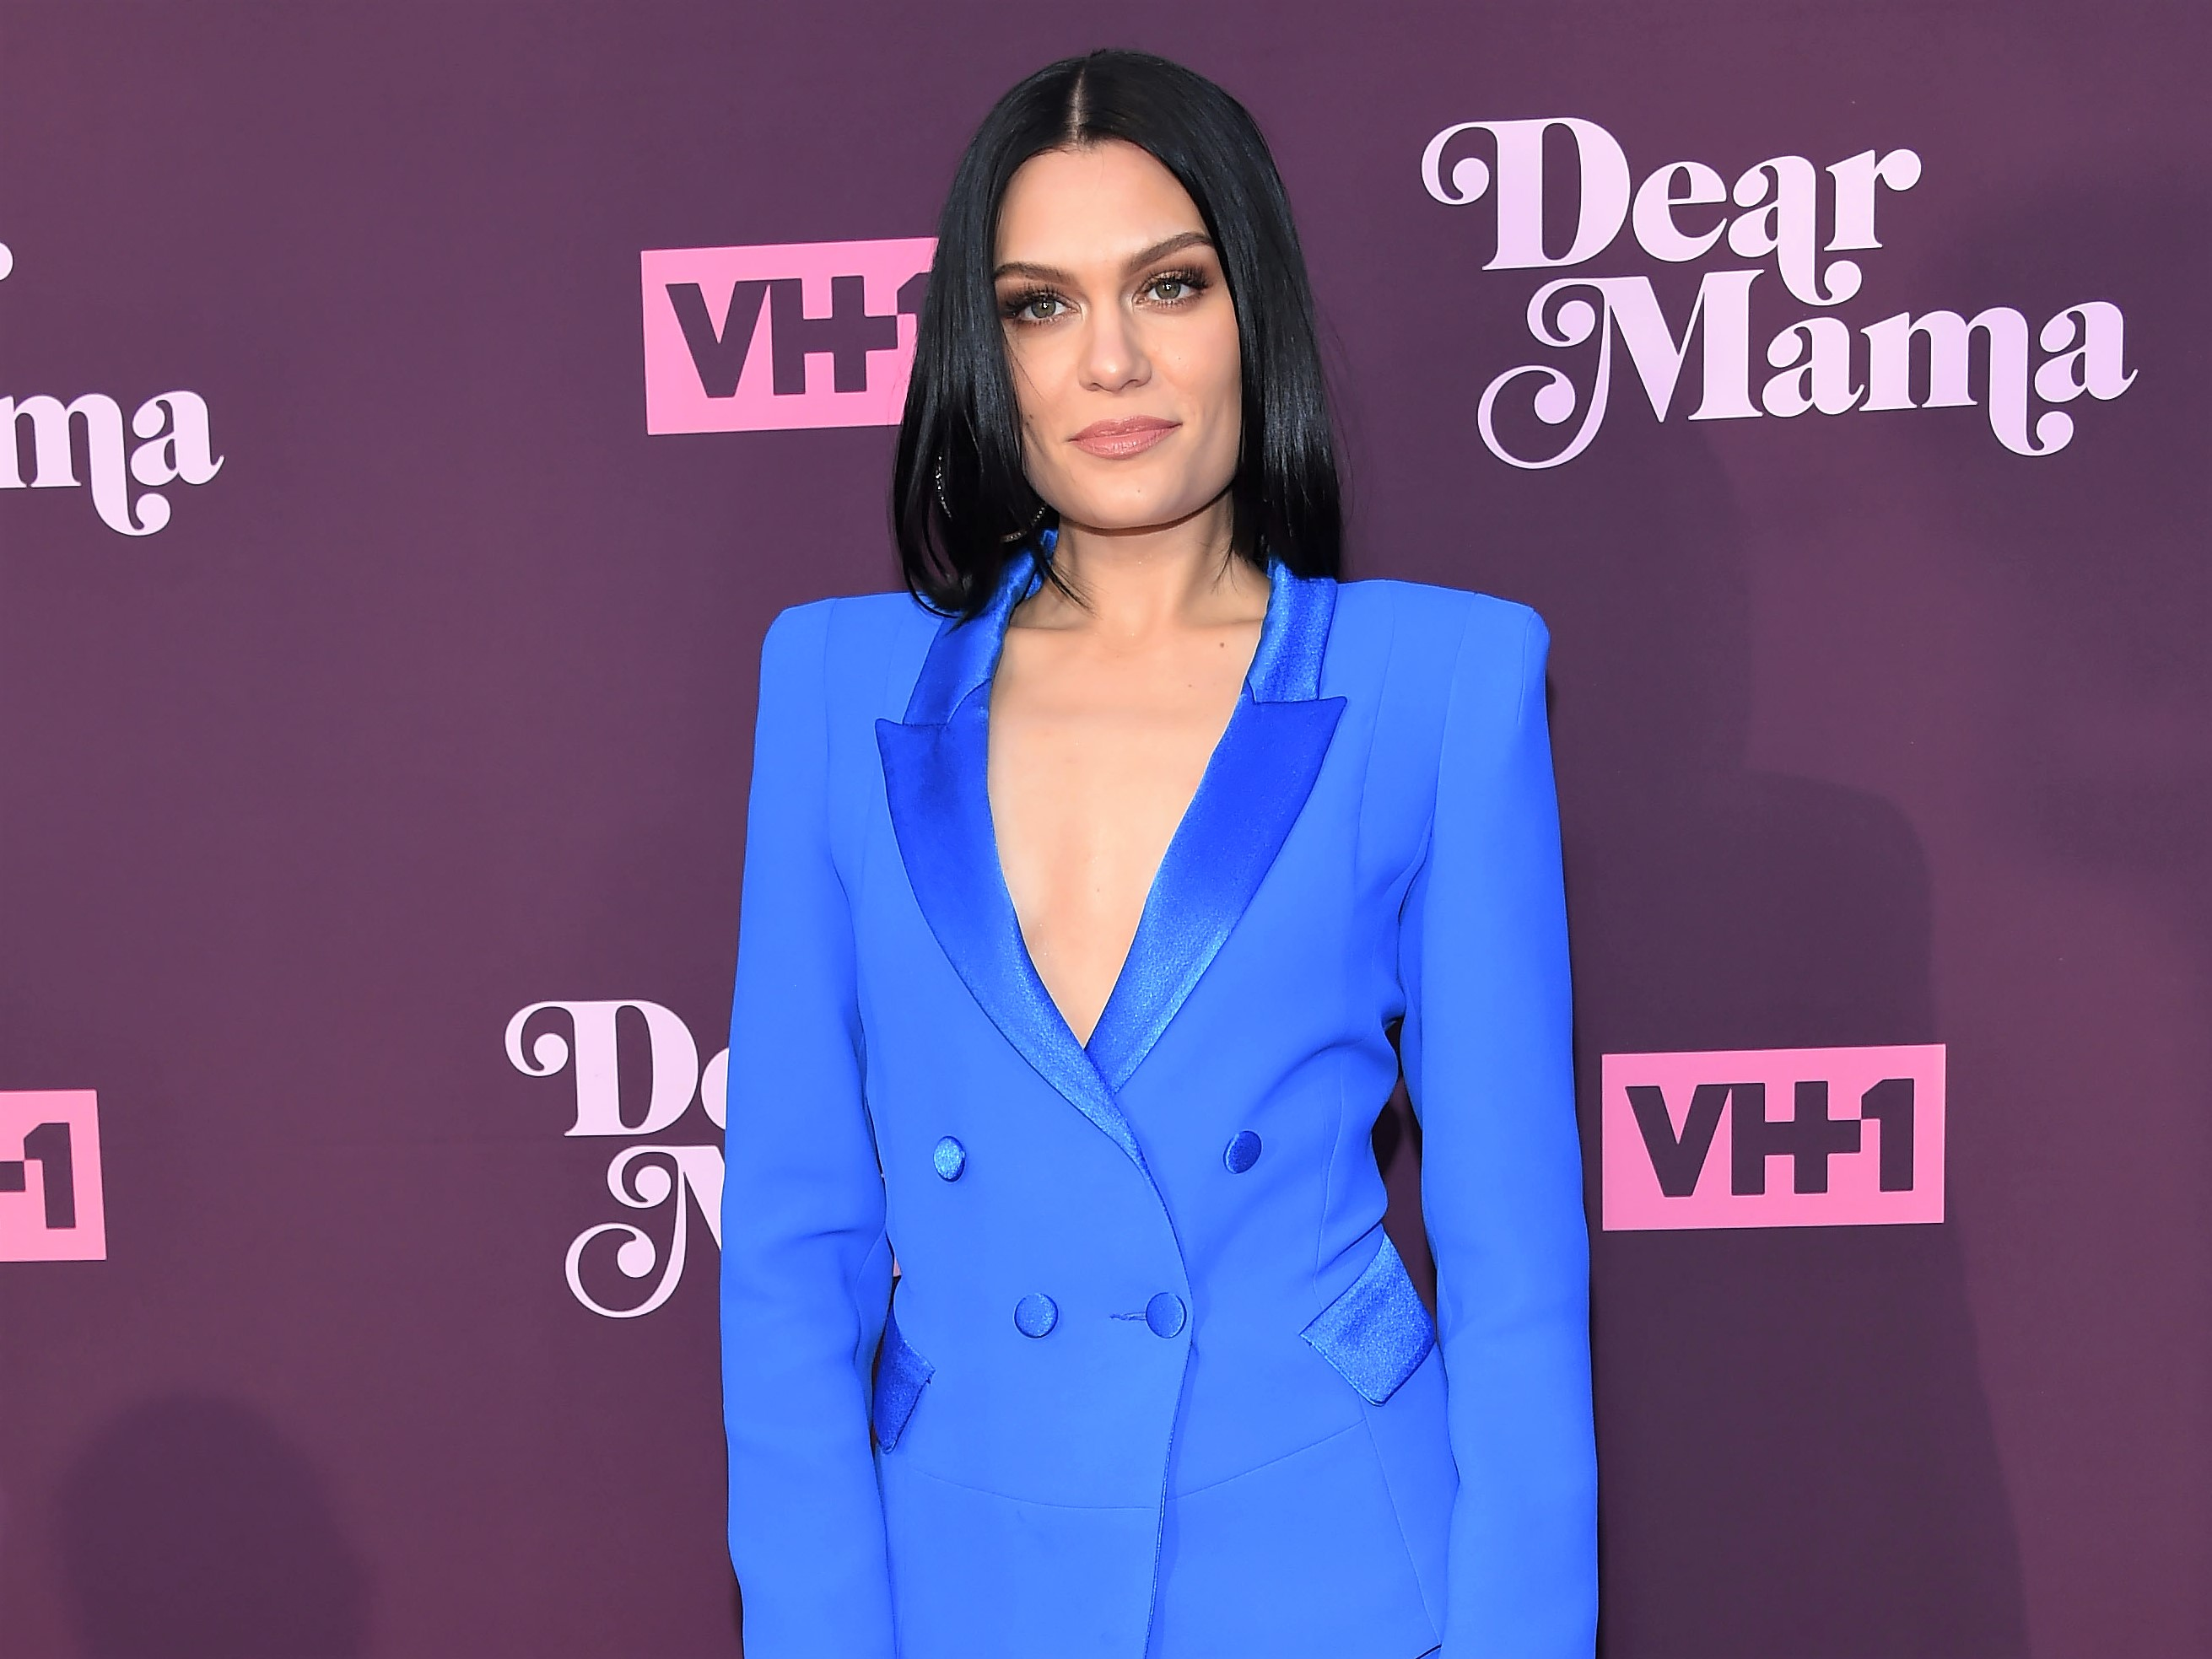 Jessie J Hasn't 'Given Up' on Having Kids After Revealing Infertility Diagnosis: 'I Will Be a Mother'